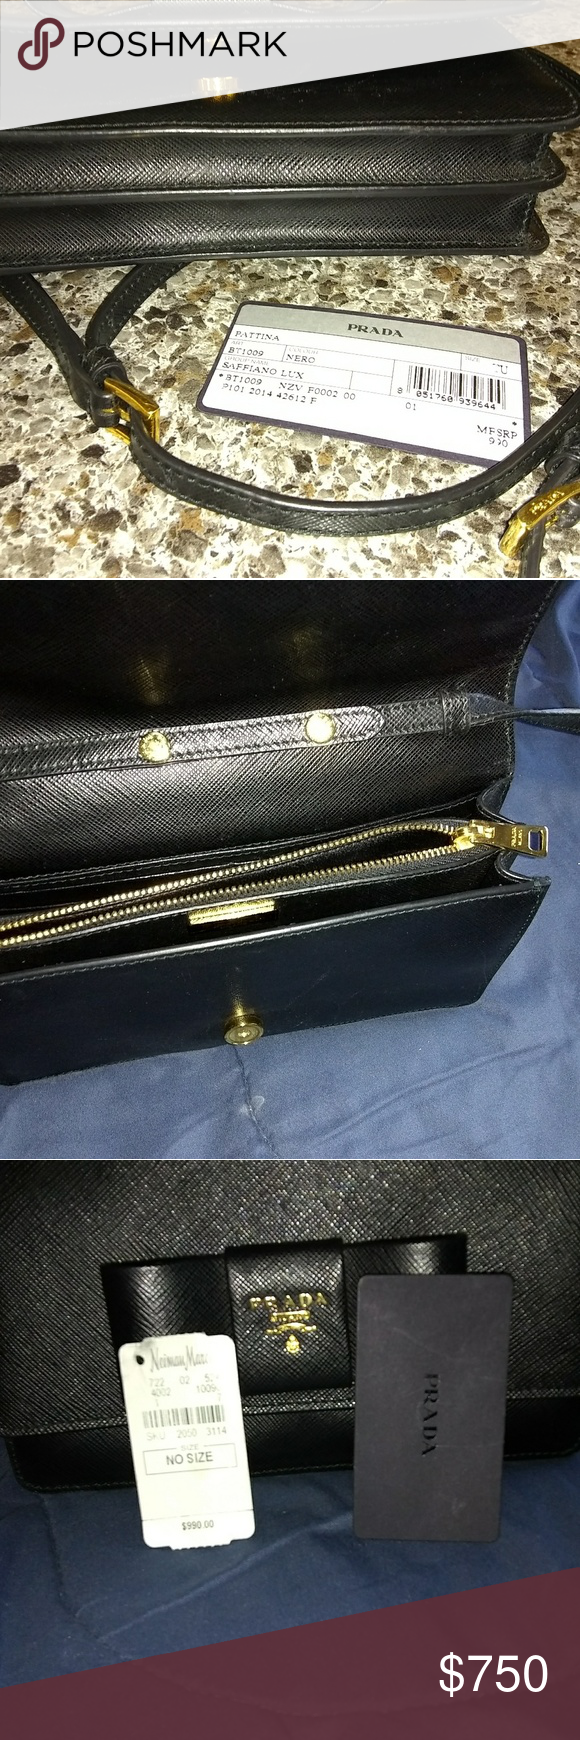 8637afbf1b7884 Prada Purse Never used, great condition . Ready to let go to the right  person. Asking 750 obo. Prada Bags Mini Bags